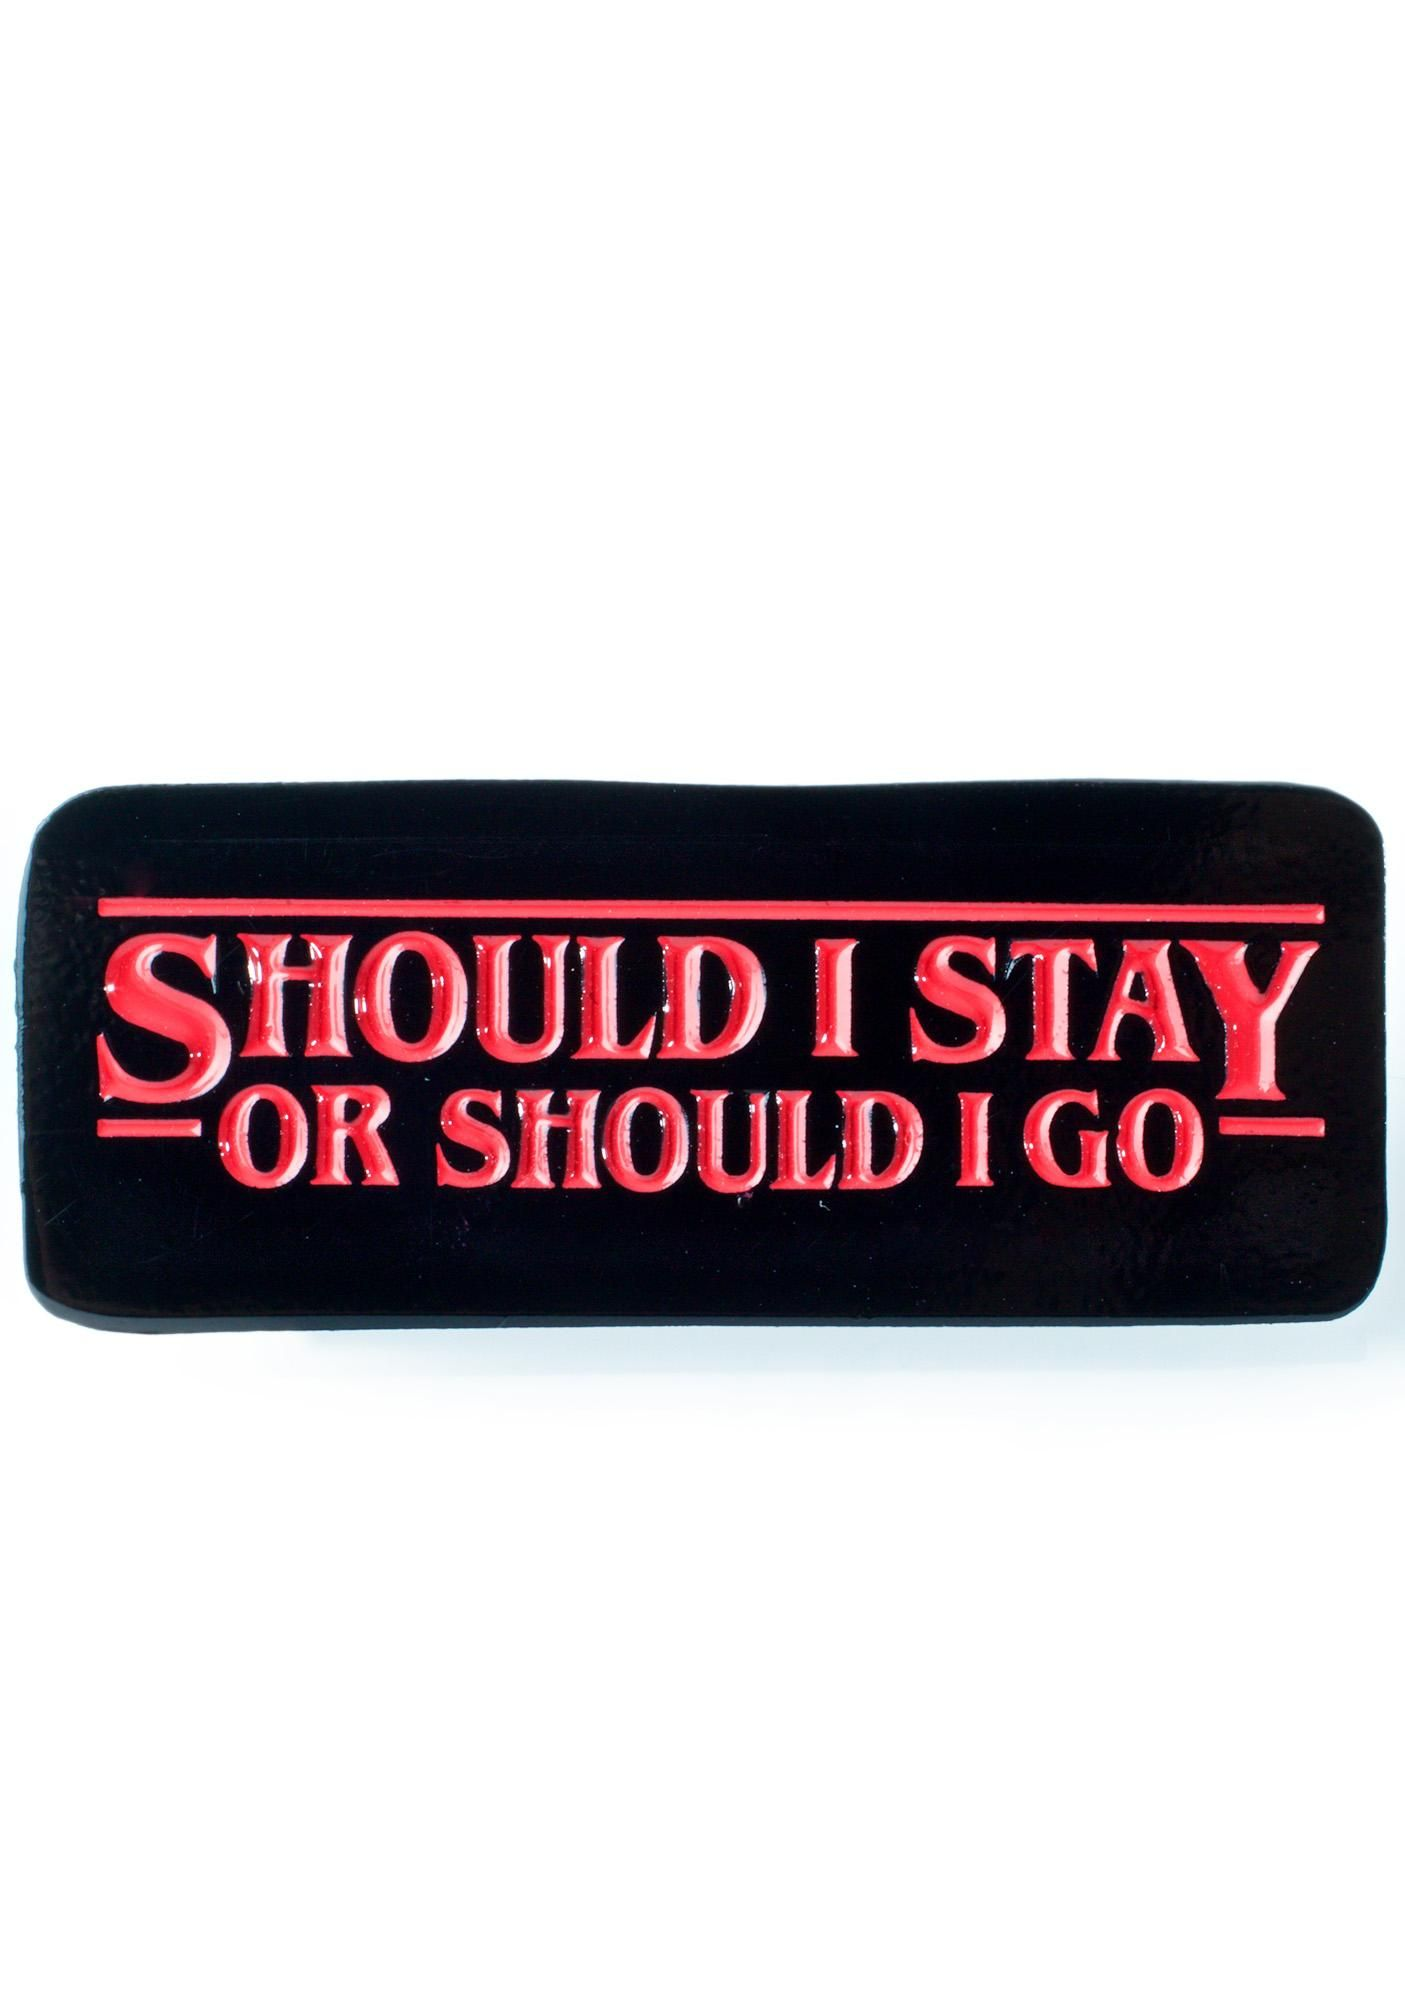 Should I Stay Or Should I Go Pin | Pins & Patches | Should i